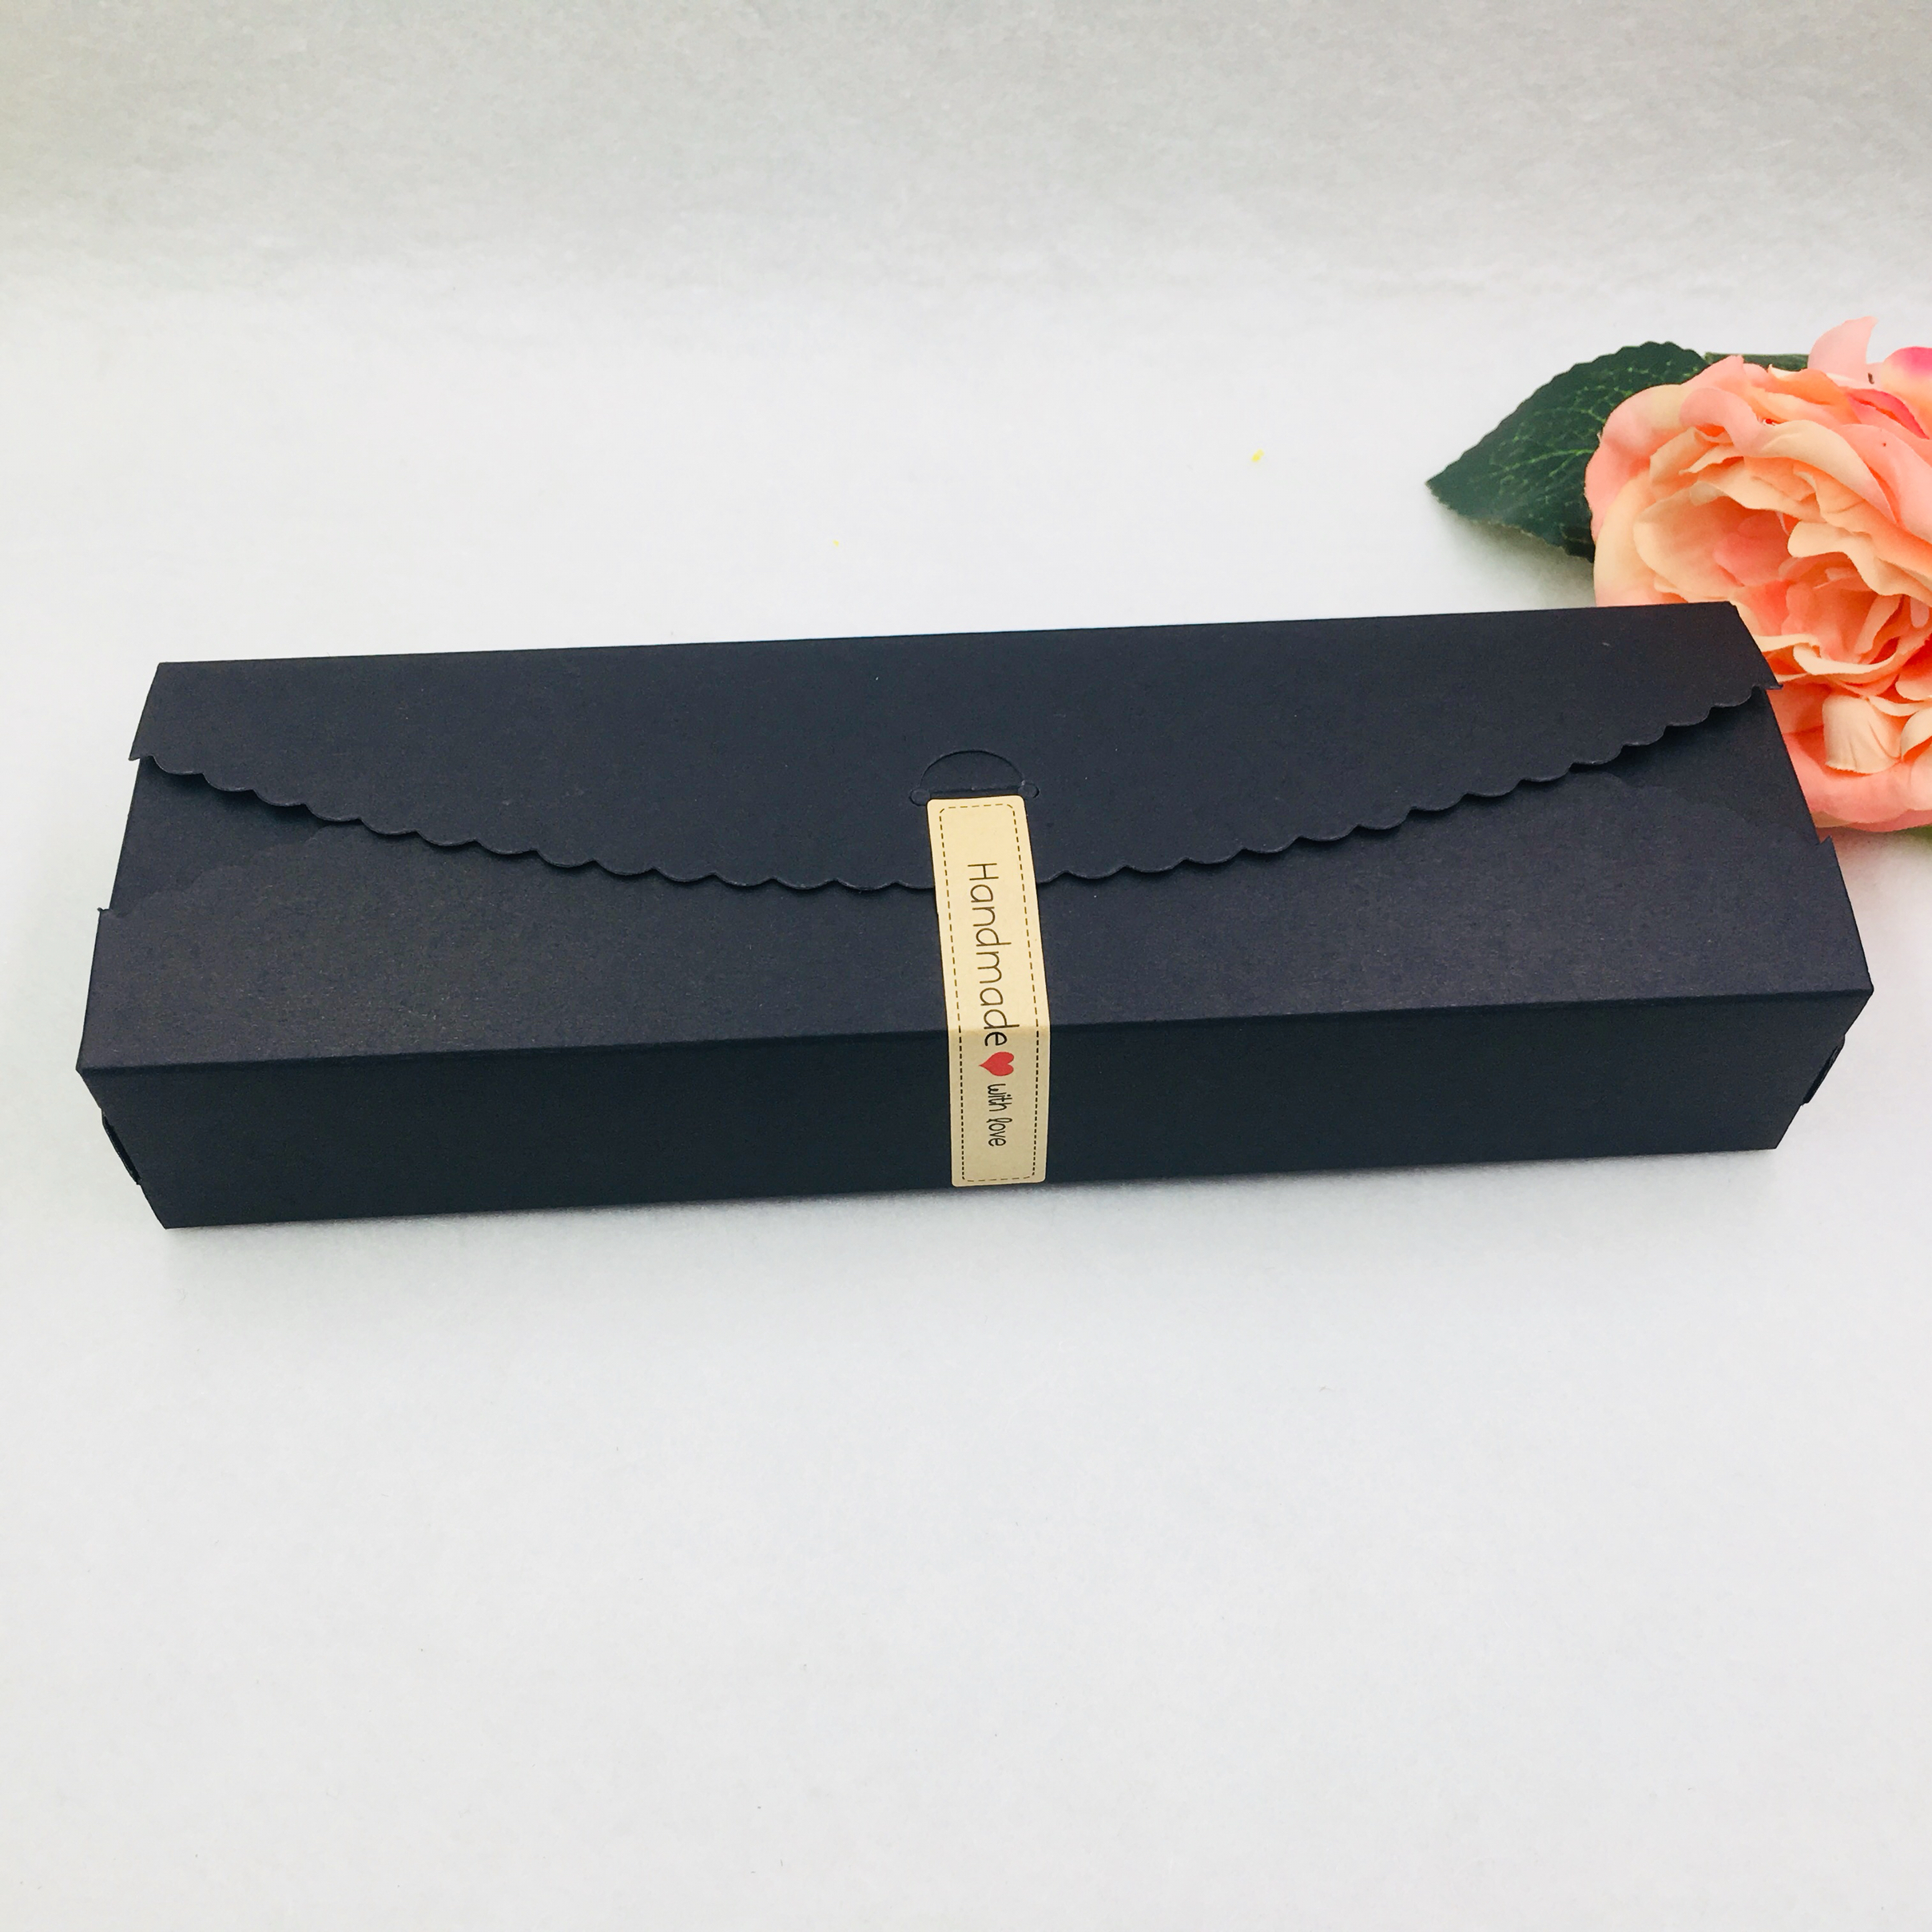 20PCS/Lot 23*7*4cm Paper Kraft Candy Gifts Boxes For Packing Jewelry Handmade Soap Biscuits Chocolate Flower Carrying Case